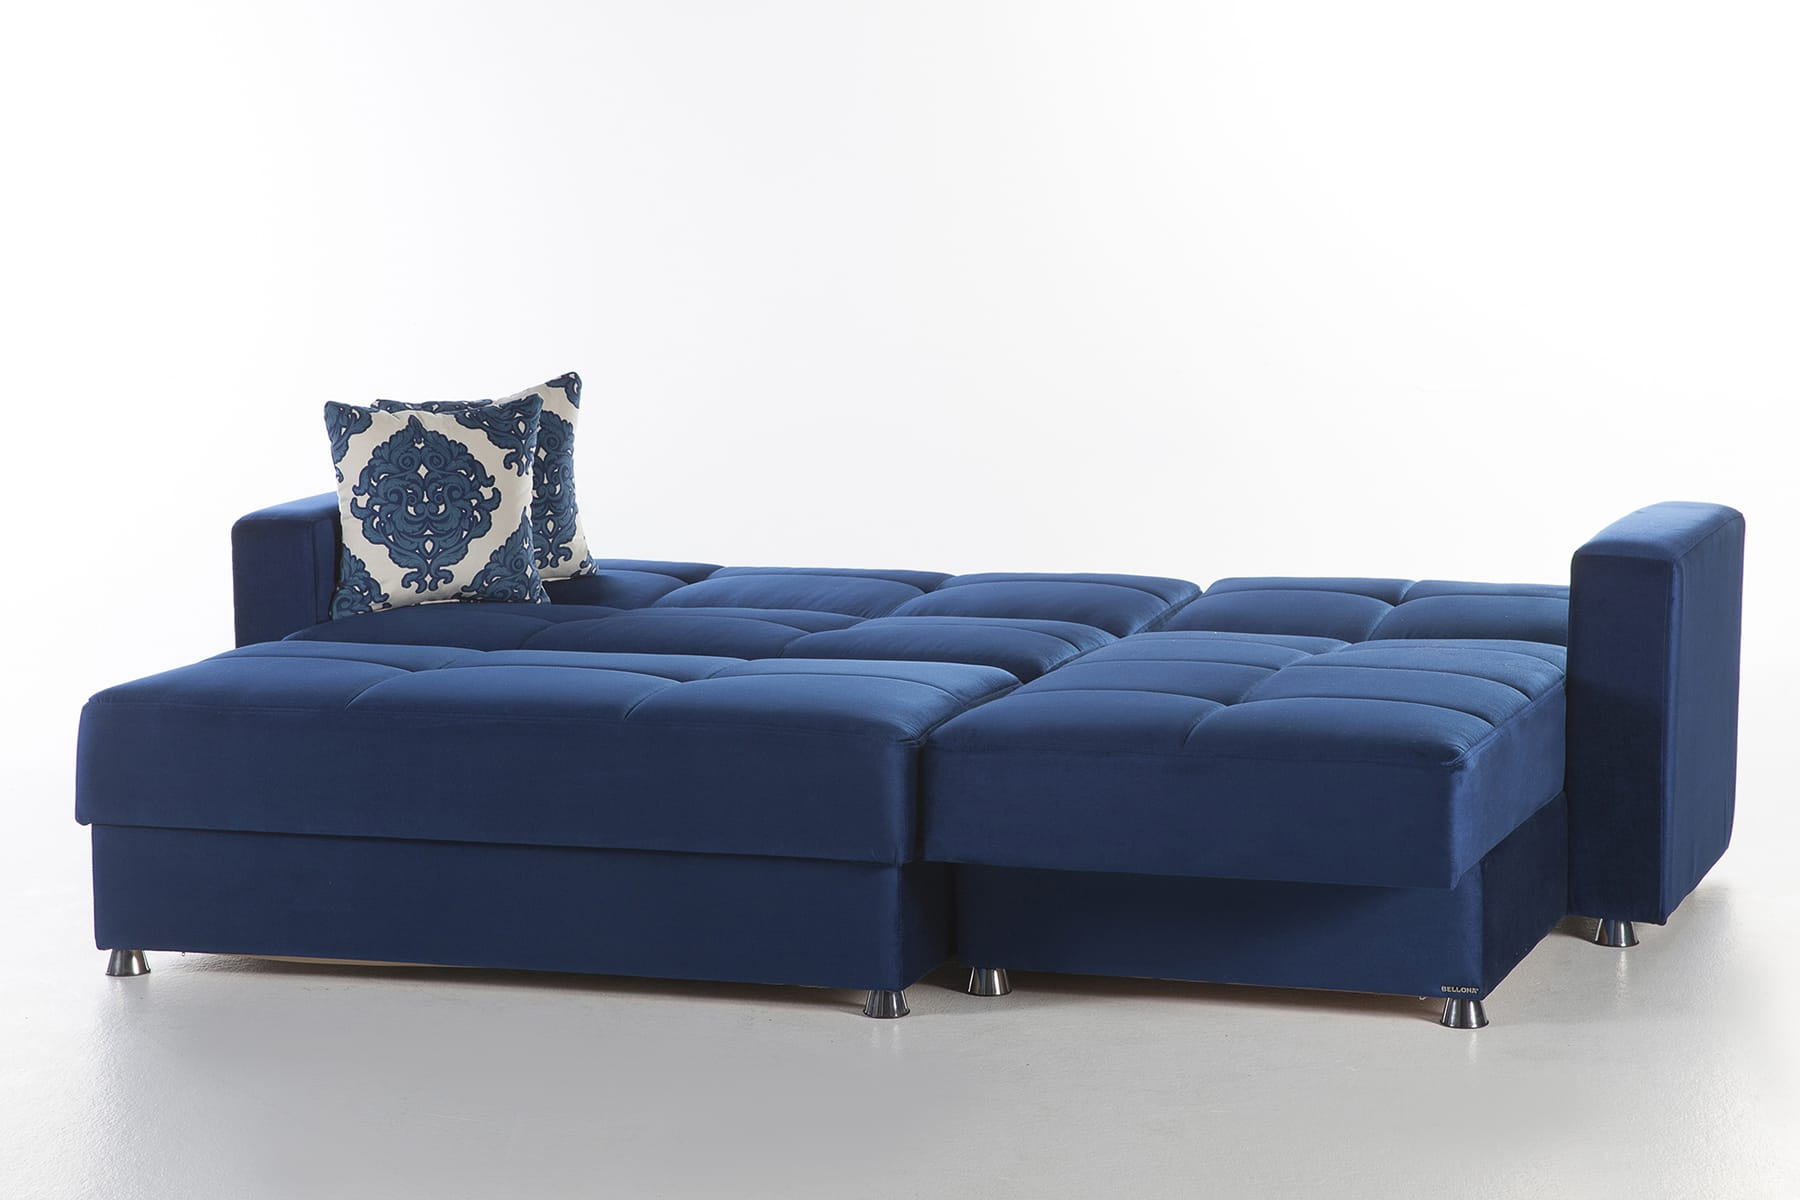 Elegant Roma Navy Sectional Chair & Ottoman Set by Sunset